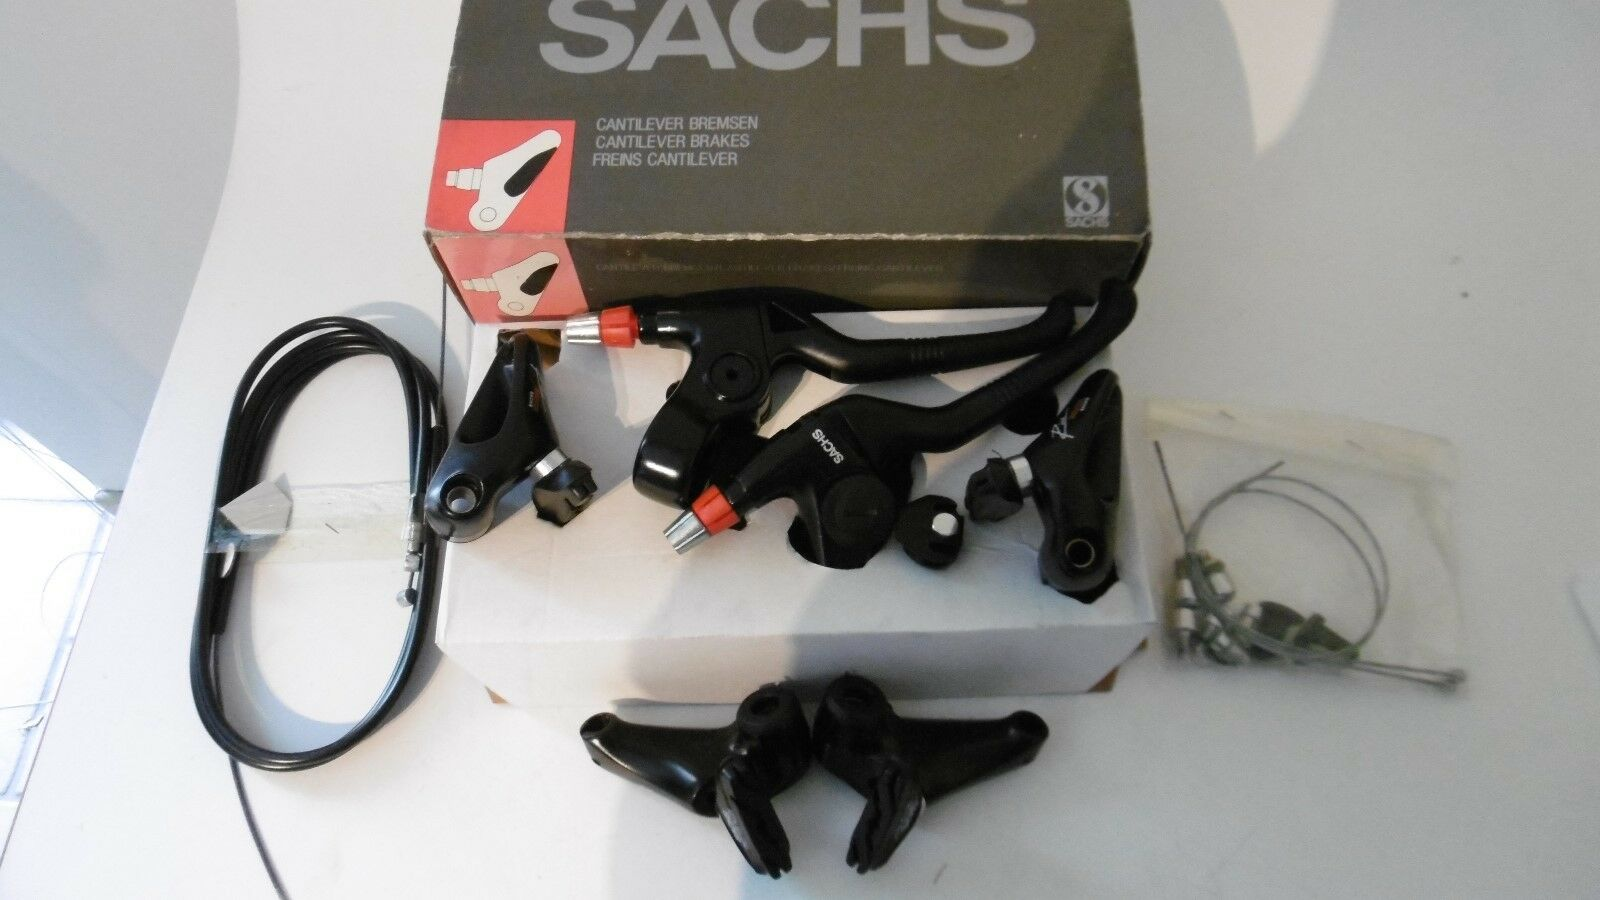 Sachs  Rival 7000 Cantilever Brakes Set New In Box  quality product